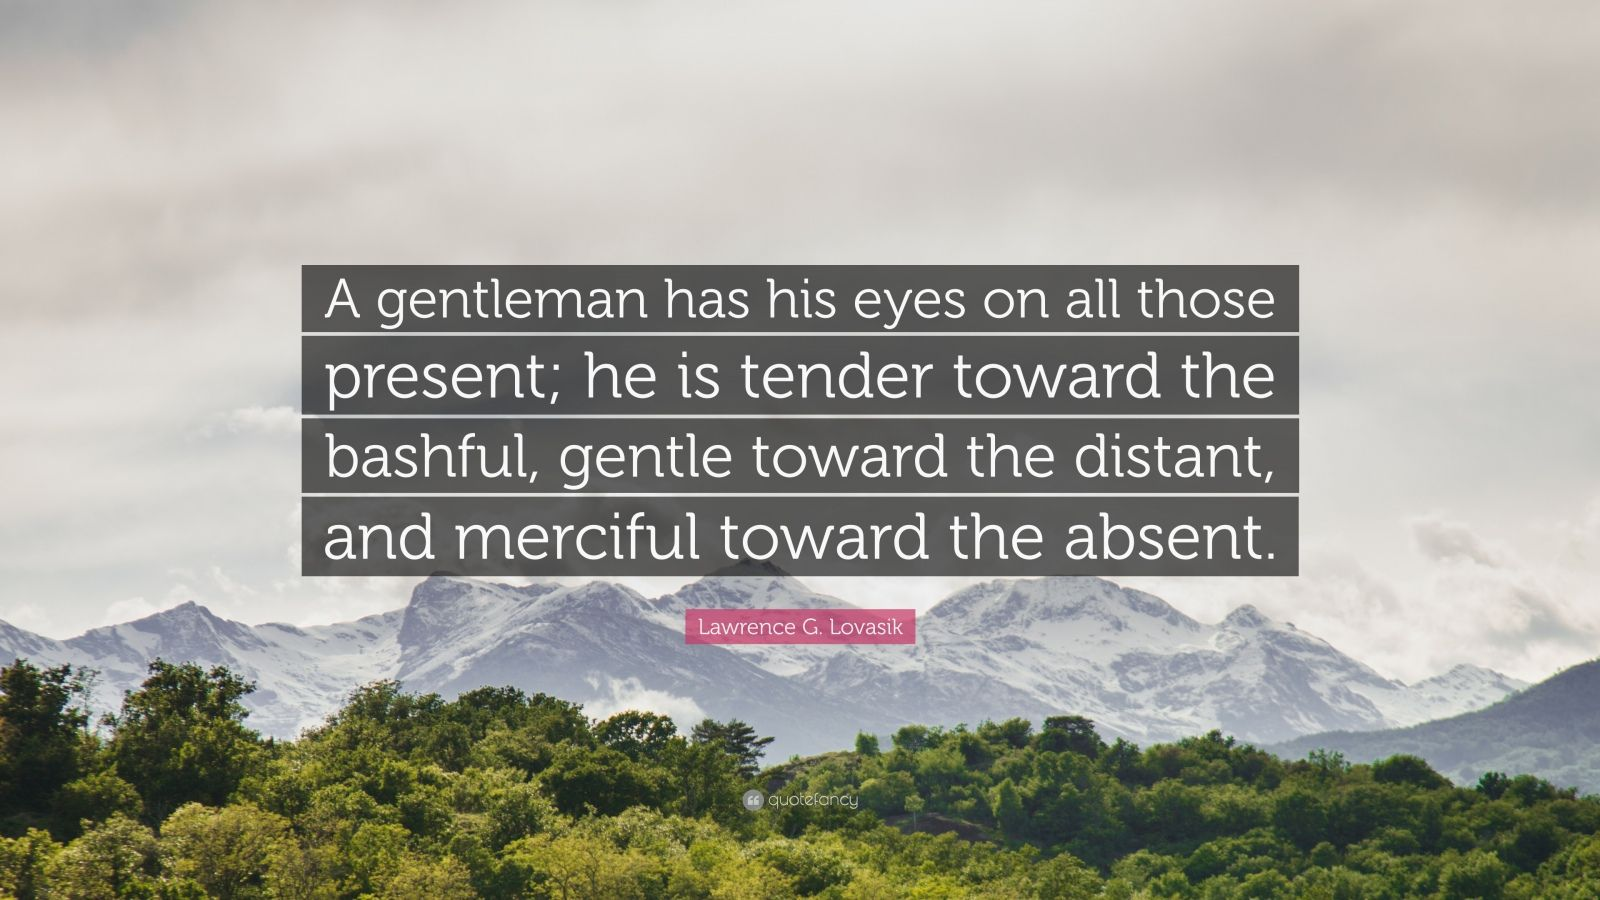 """Lawrence G. Lovasik Quote: """"A gentleman has his eyes on all those present; he is tender toward the bashful, gentle toward the distant, and merciful toward the absent."""""""